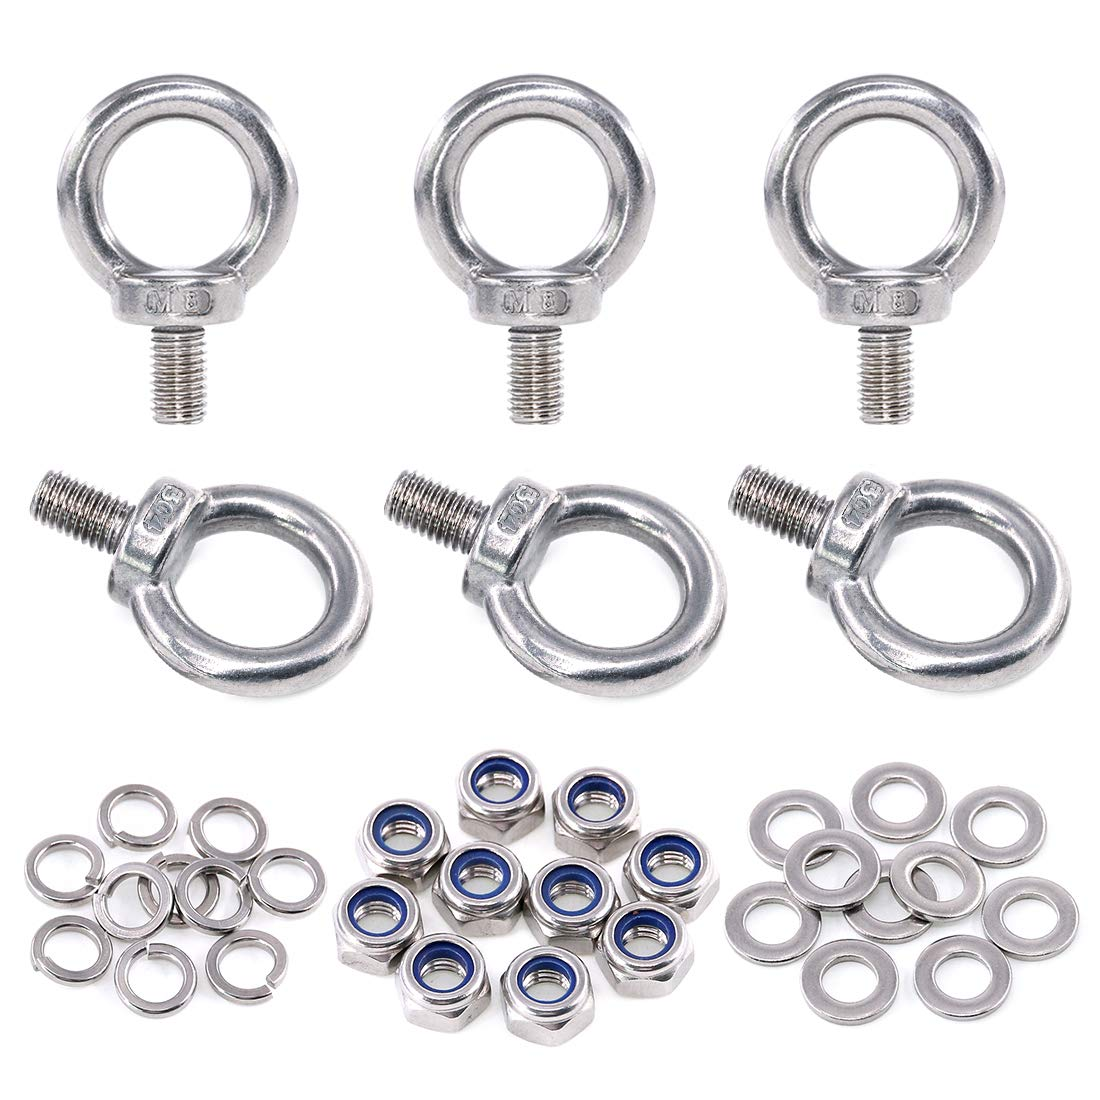 Swpeet 36Pcs 304 Stainless Steel M8 Male Thread Lifting Ring Eye Bolt Kit, Including 6Pcs M5 Eye Bolt with 10Pcs Lock Nuts, 10Pcs Lock Washers and 10Pcs Flat Washers